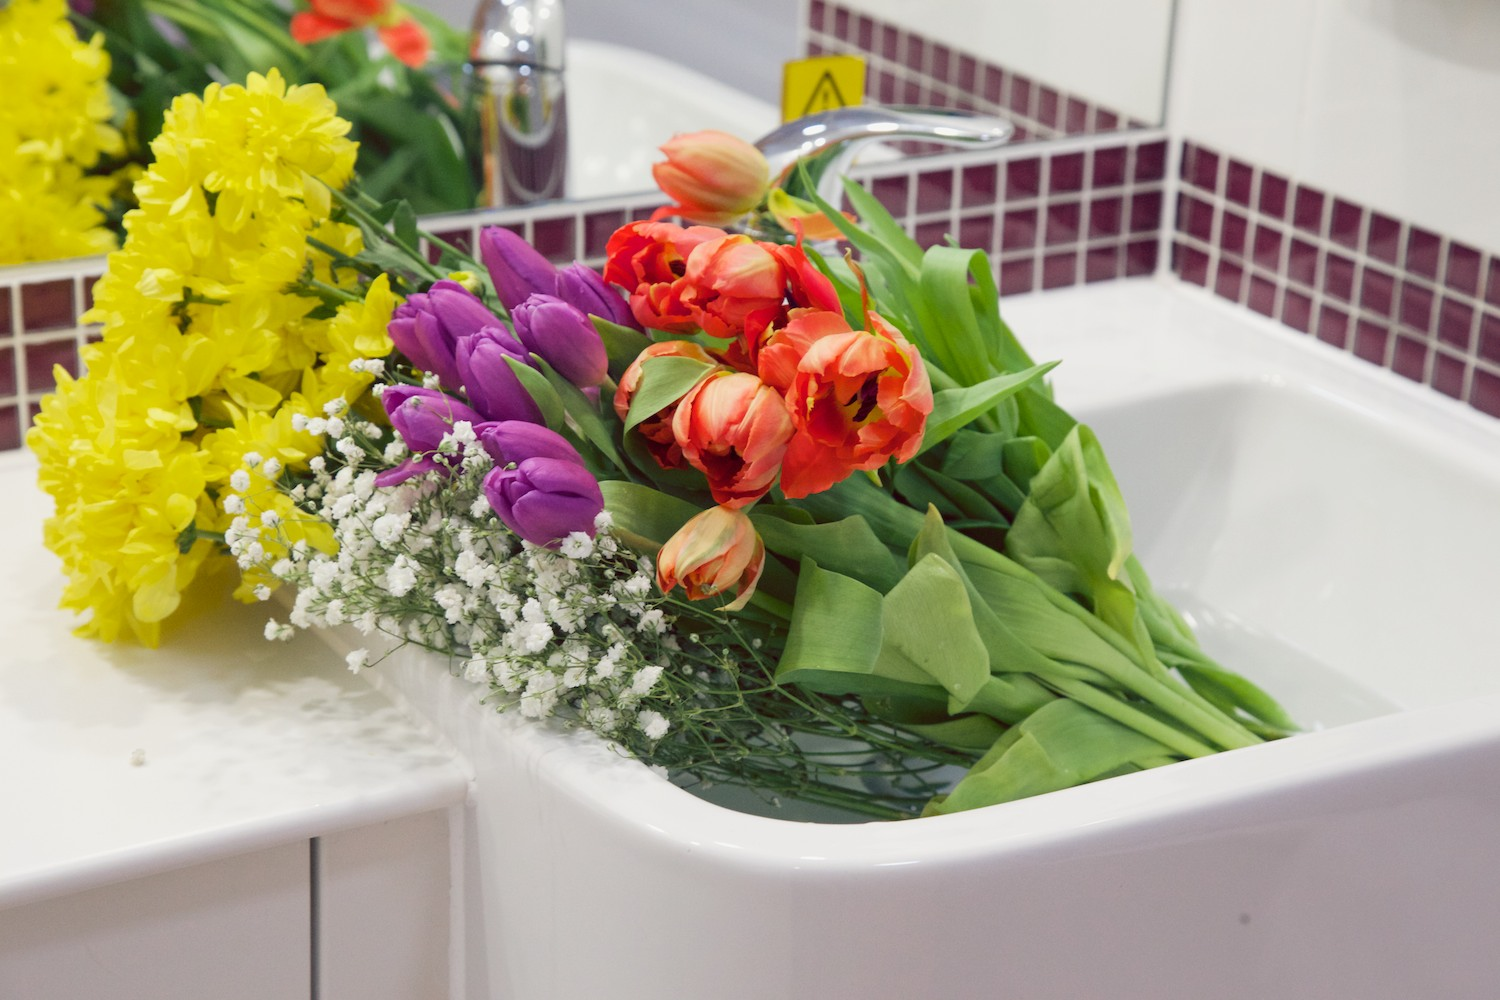 How to store flowers